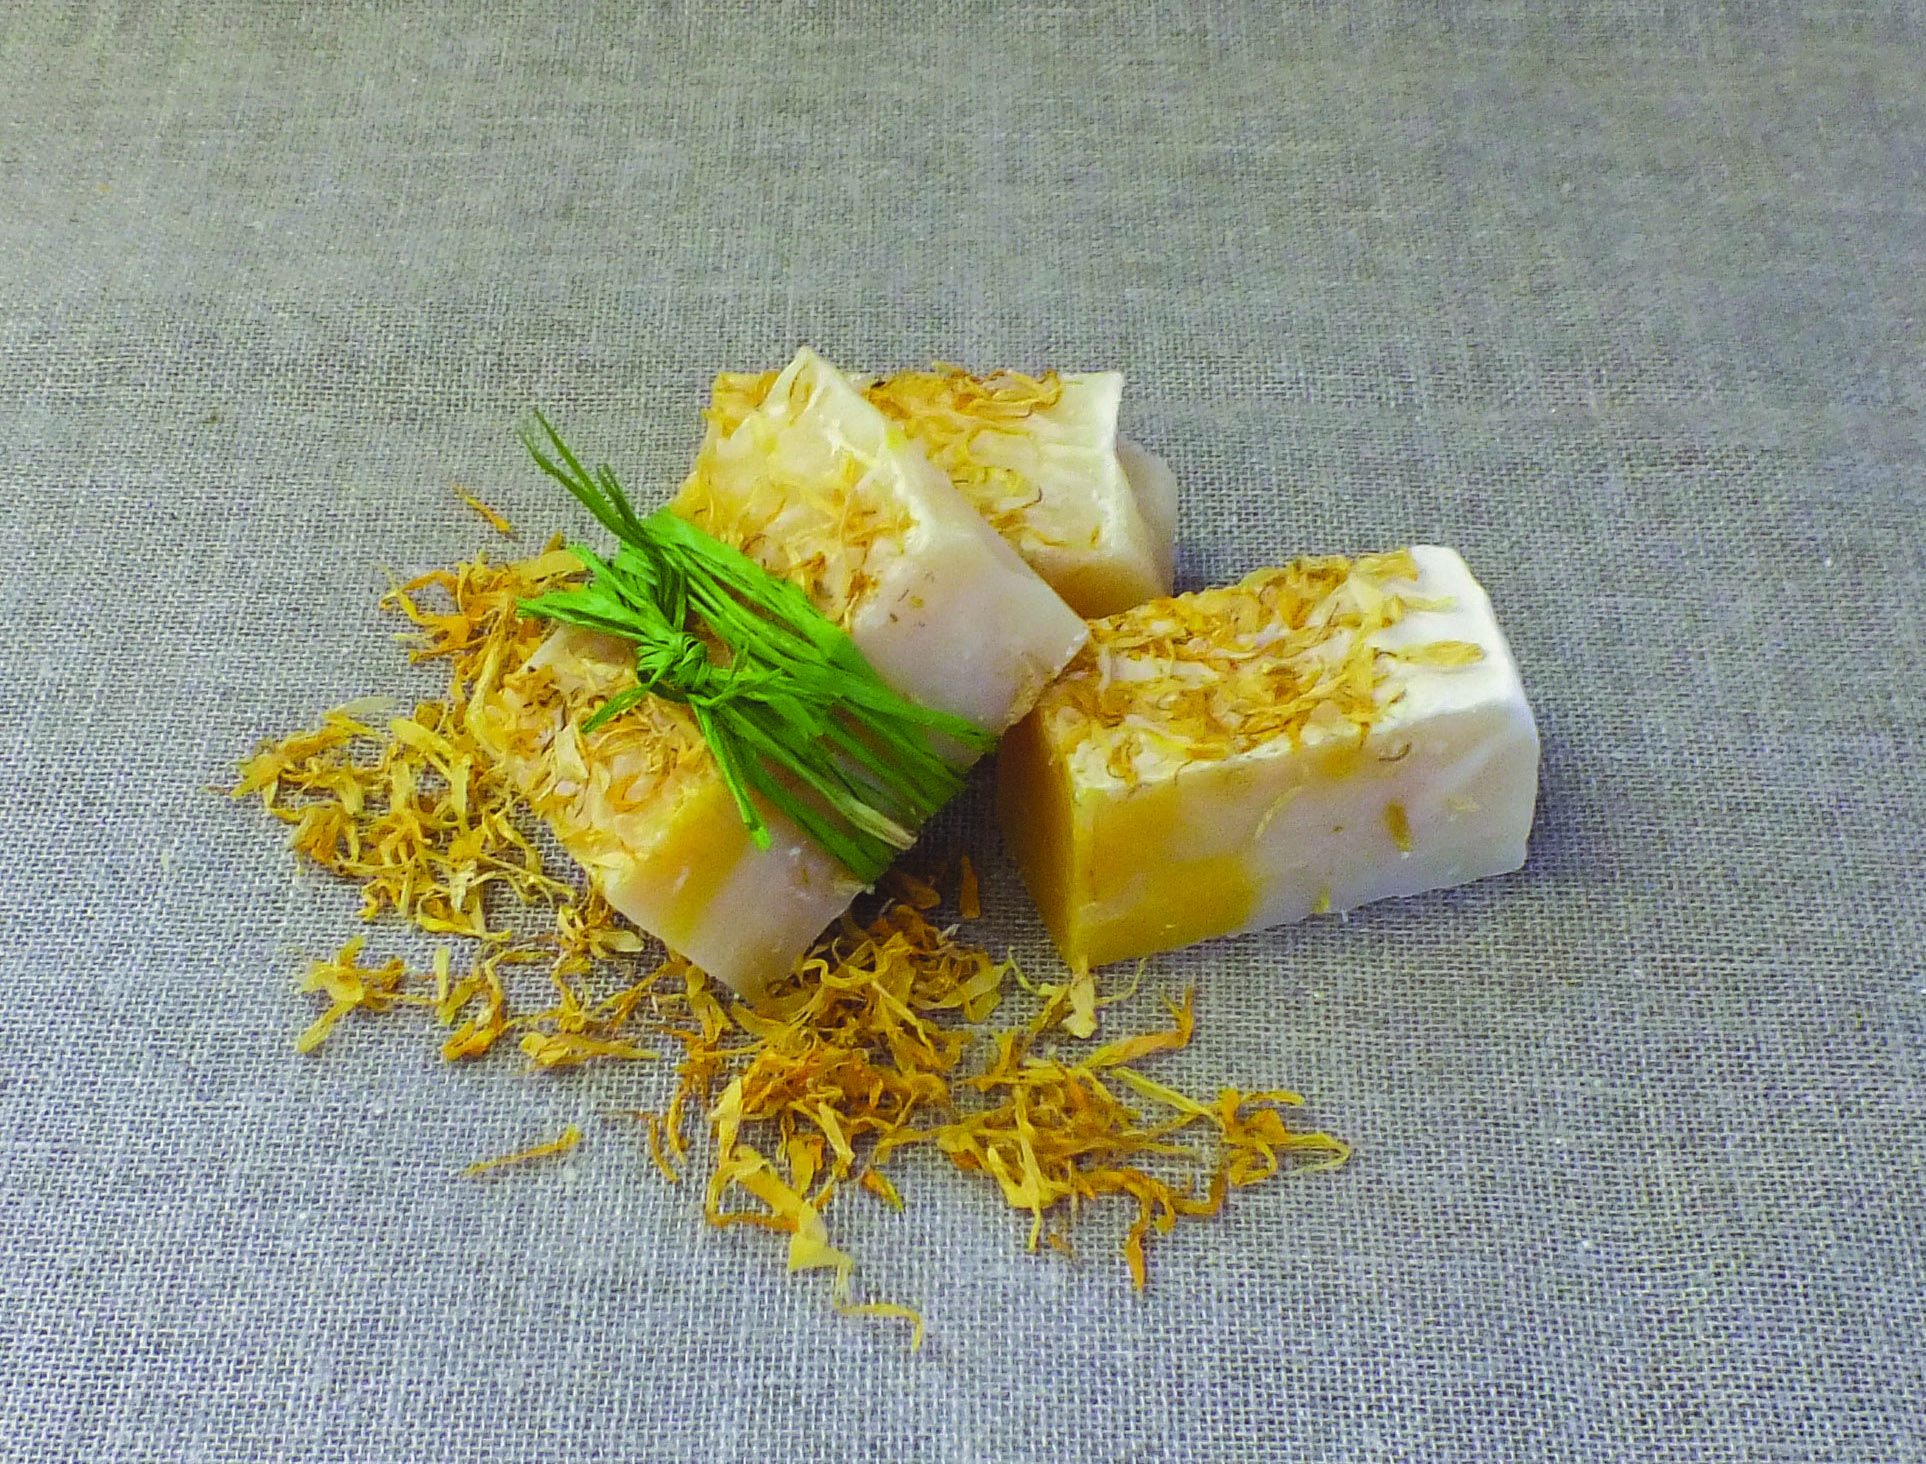 The Soap Kitchen UK Wholesale supplier of Soap making